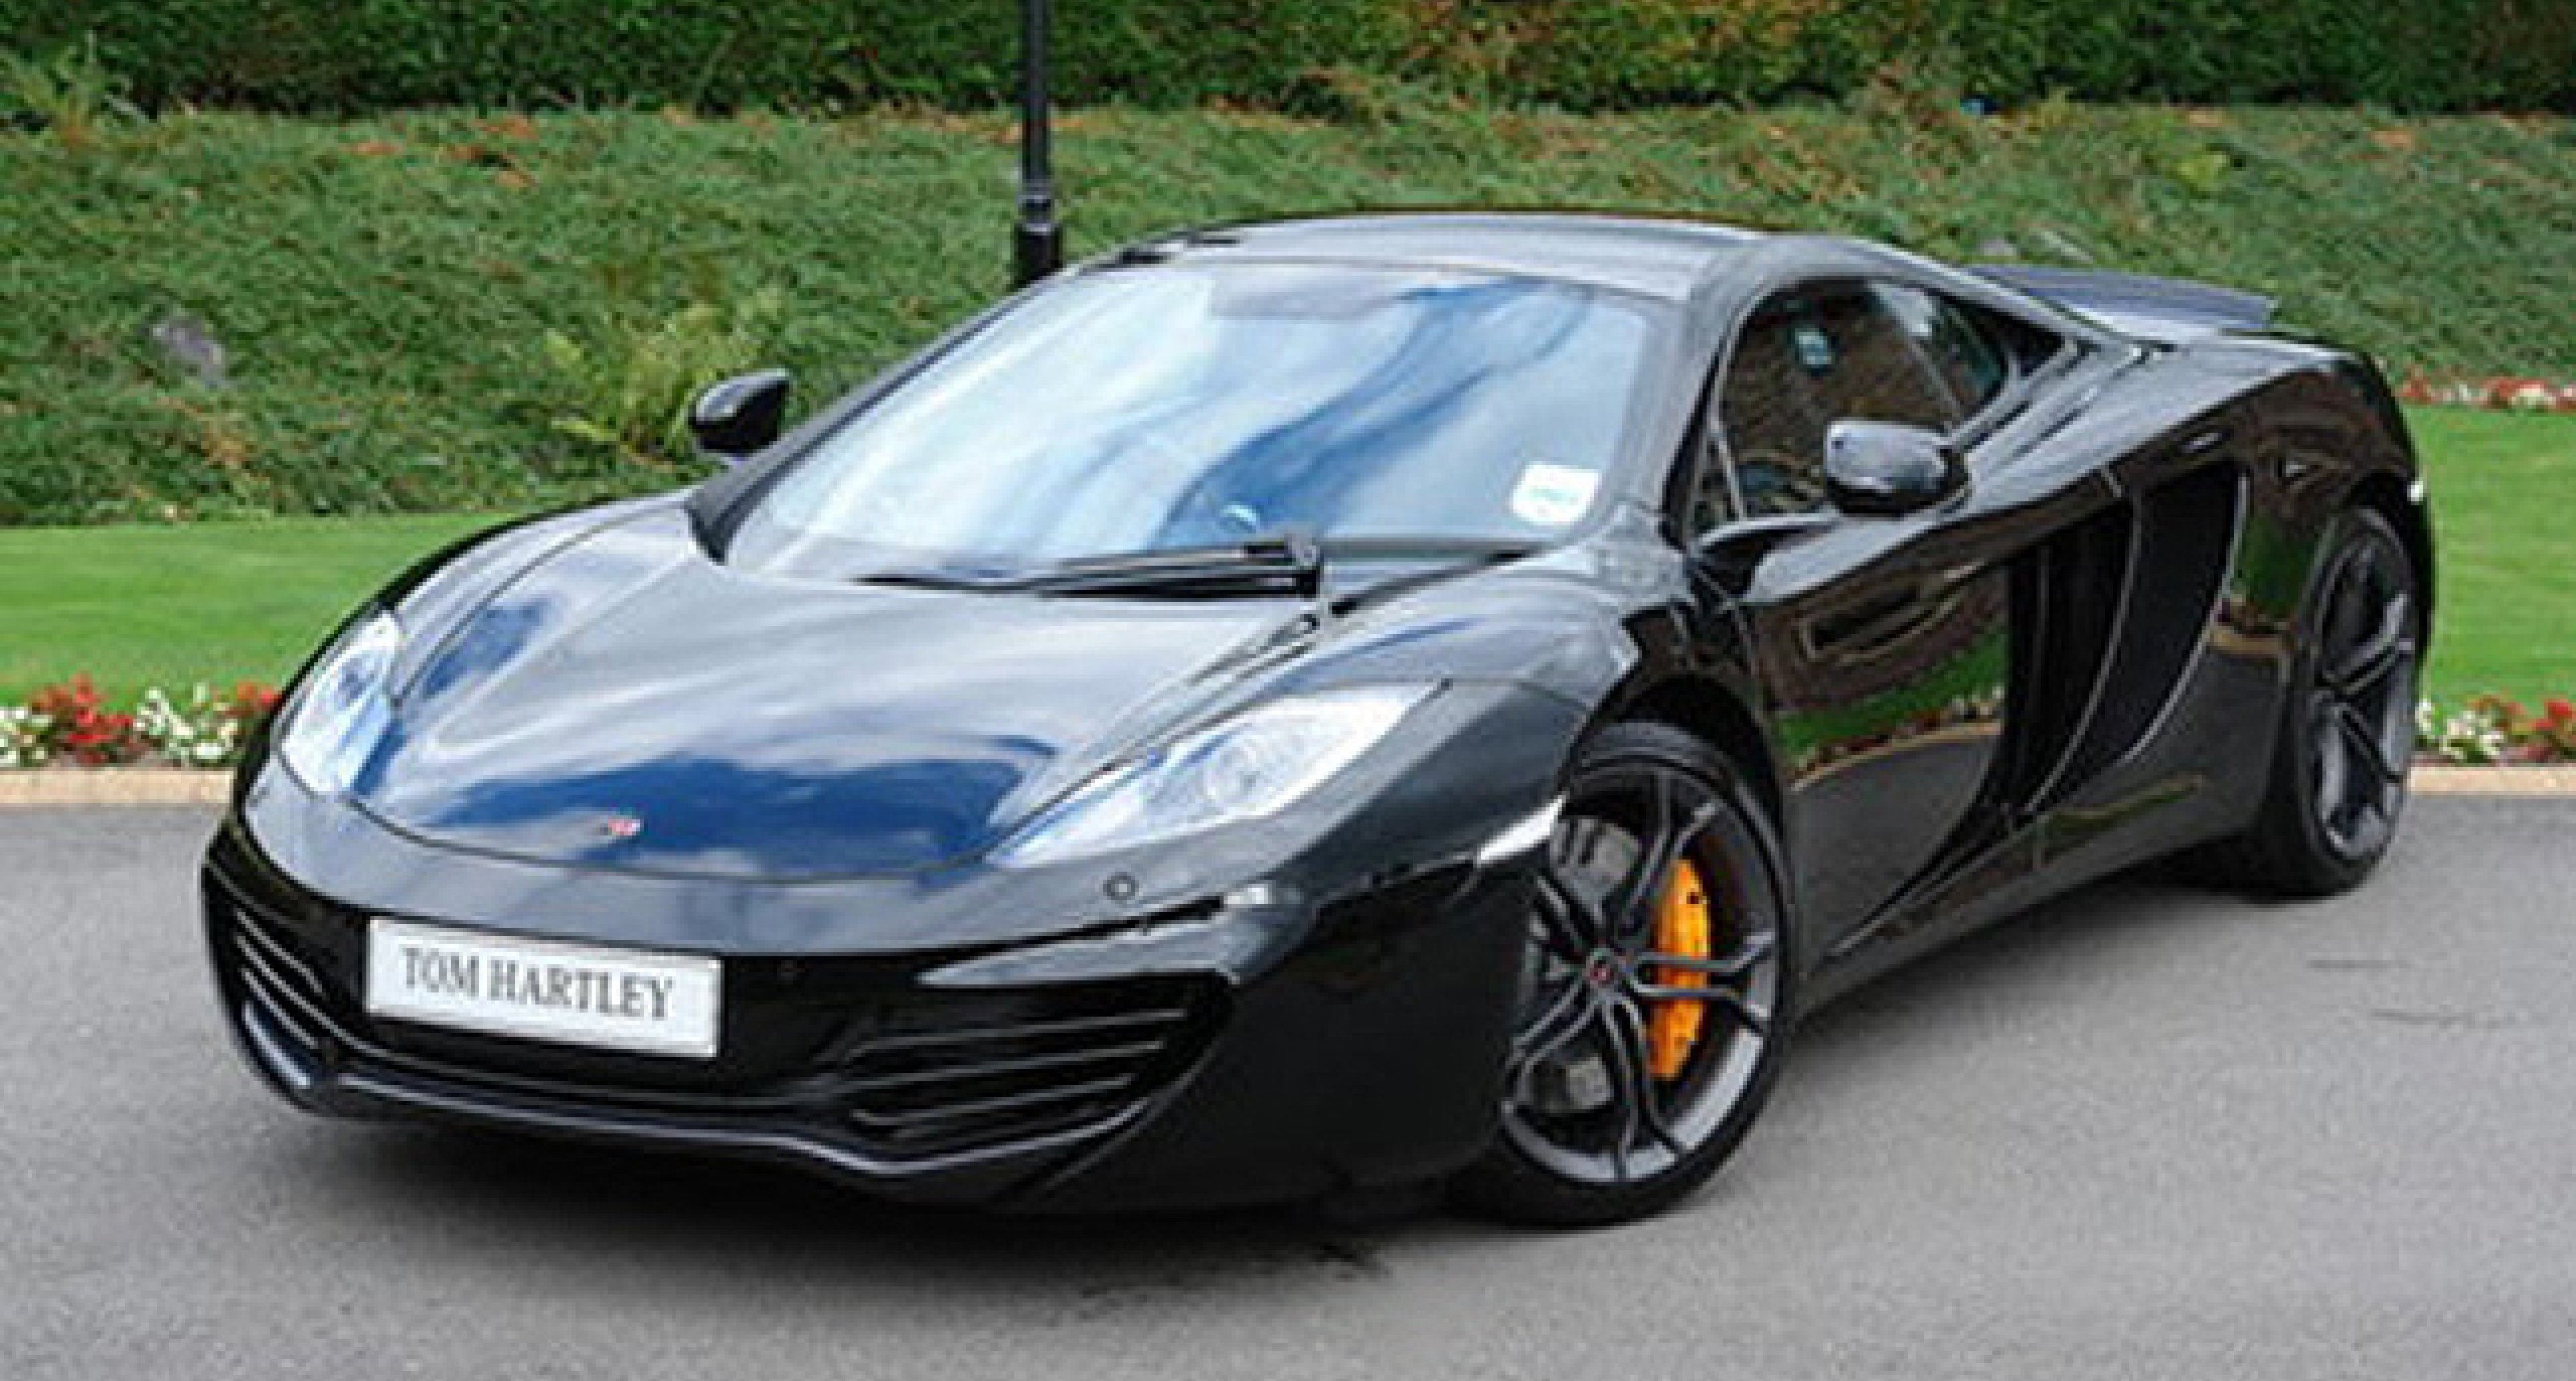 Editor's Choice: McLaren MP4-12C